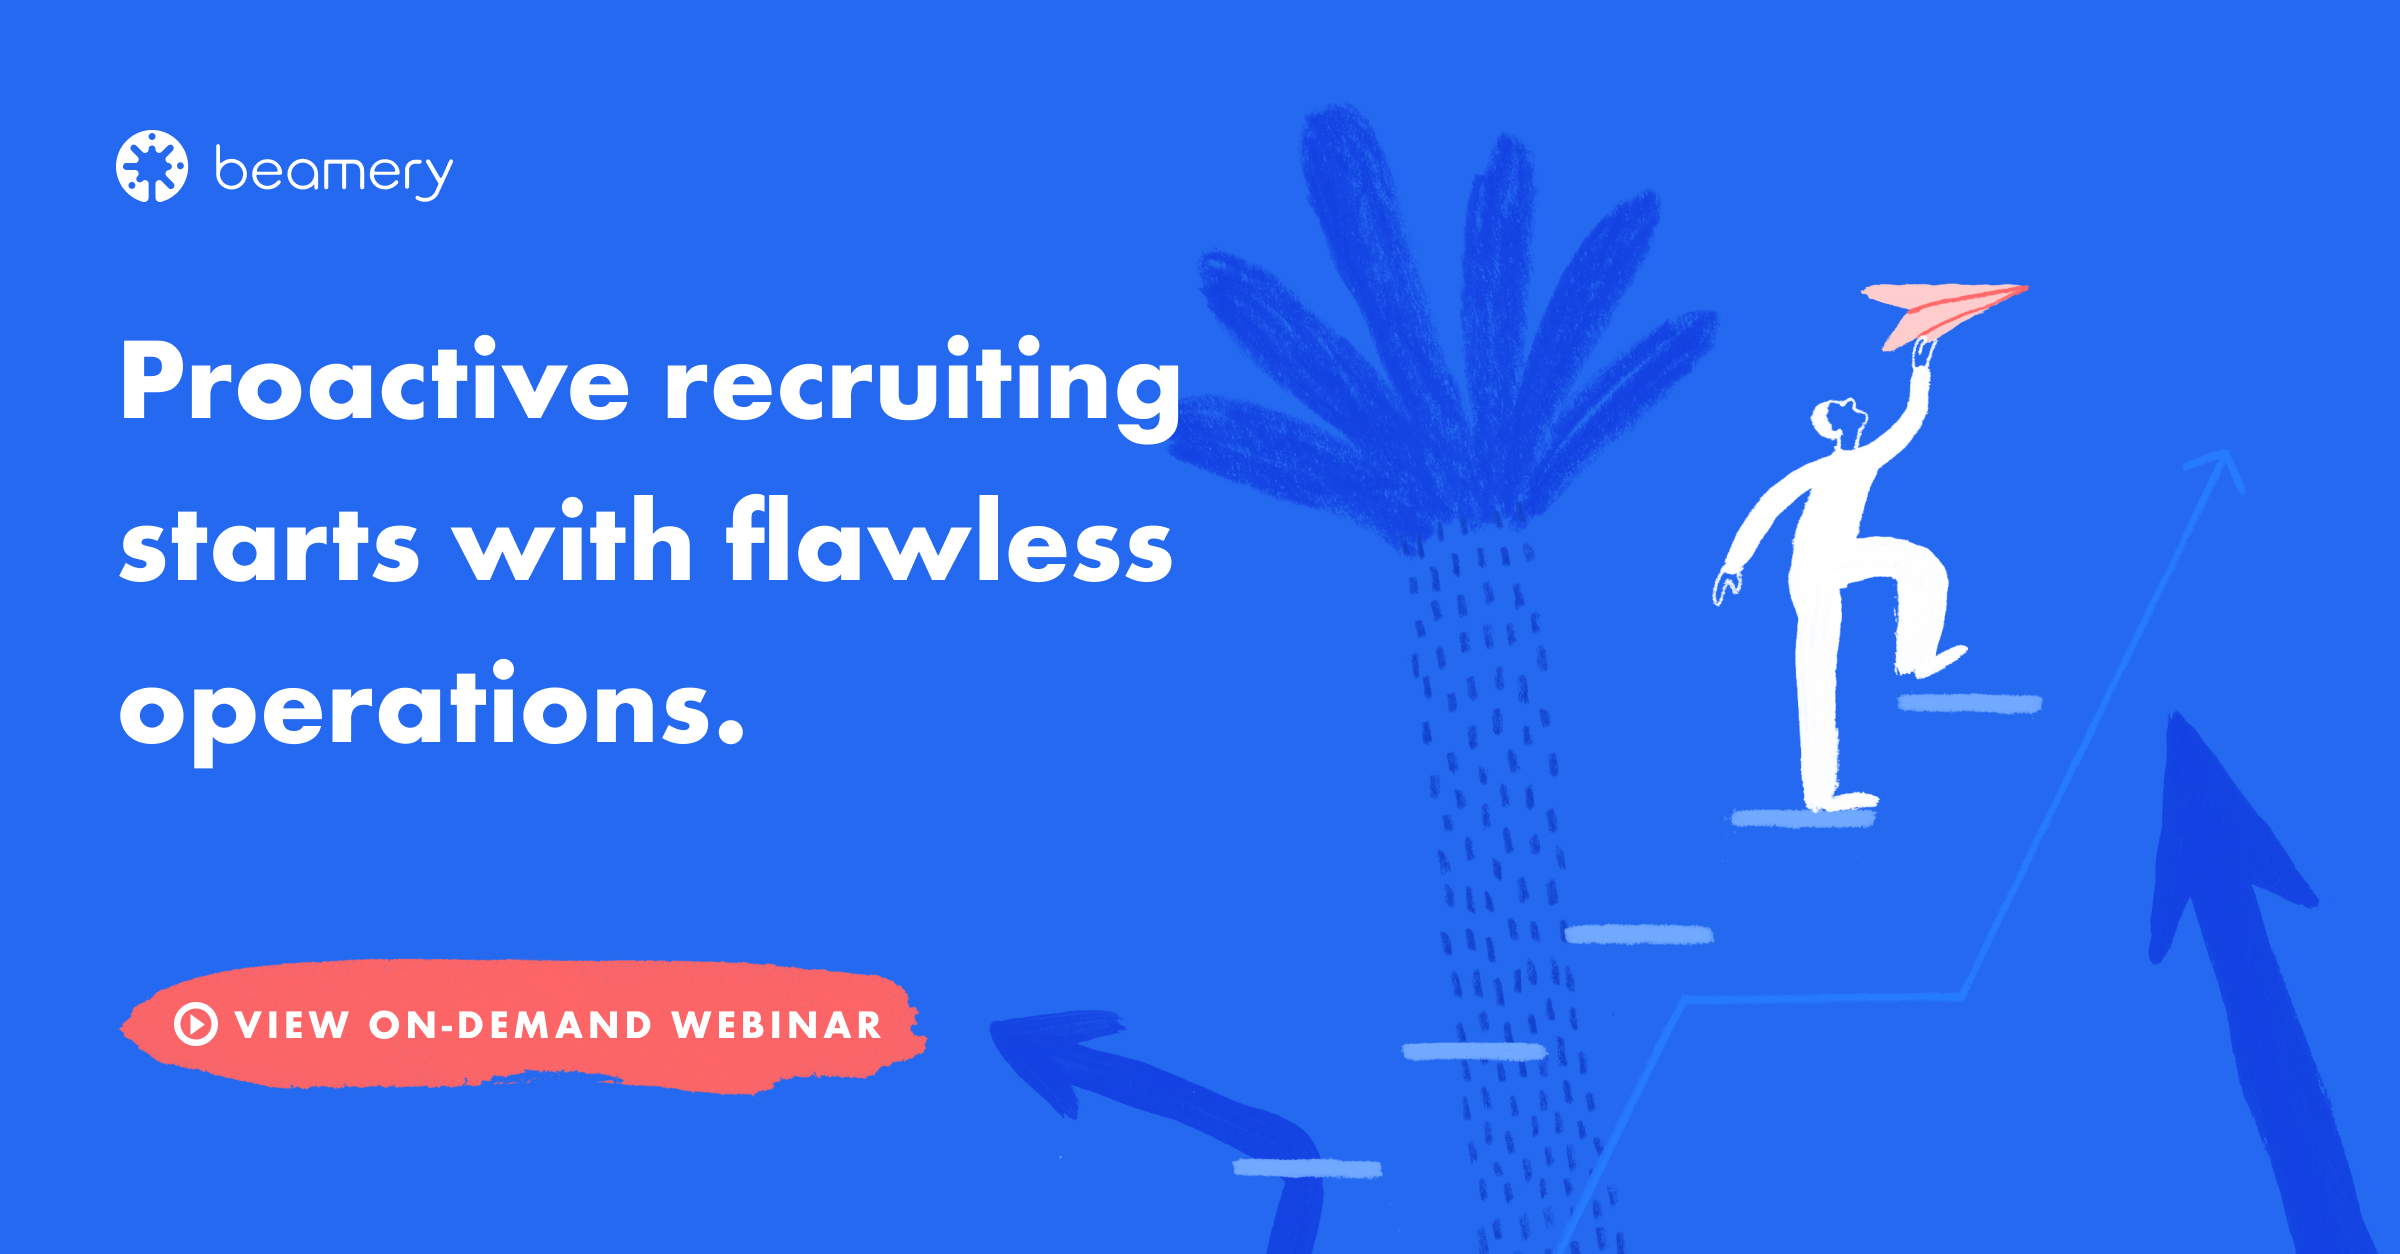 linkedin-ad-academy-1 Proactive recruiting starts with flawless operations@1